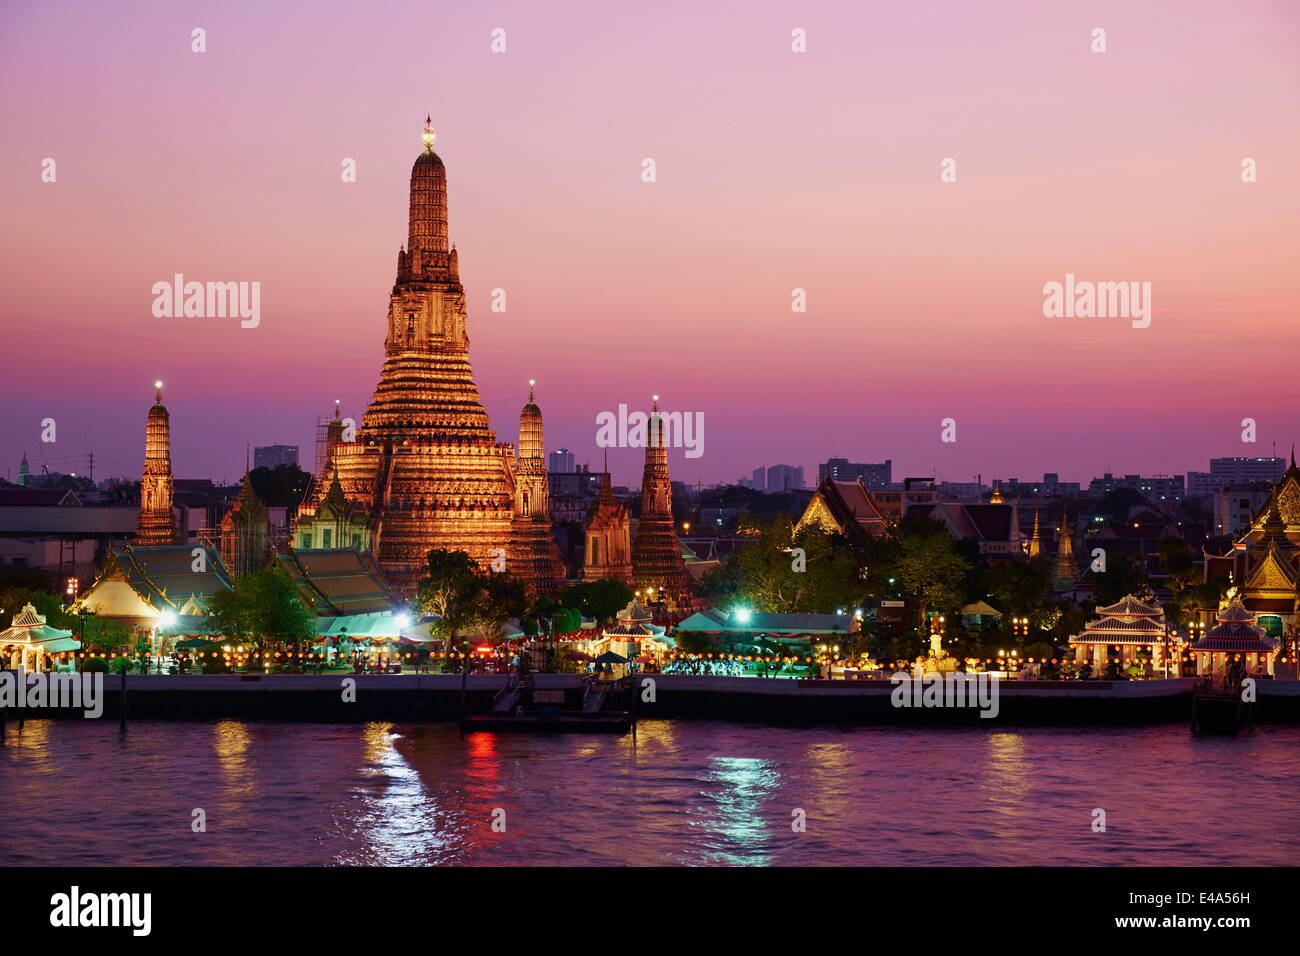 Wat Arun (Temple of the Dawn) and the Chao Phraya River by night, Bangkok, Thailand, Southeast Asia, Asia - Stock Image